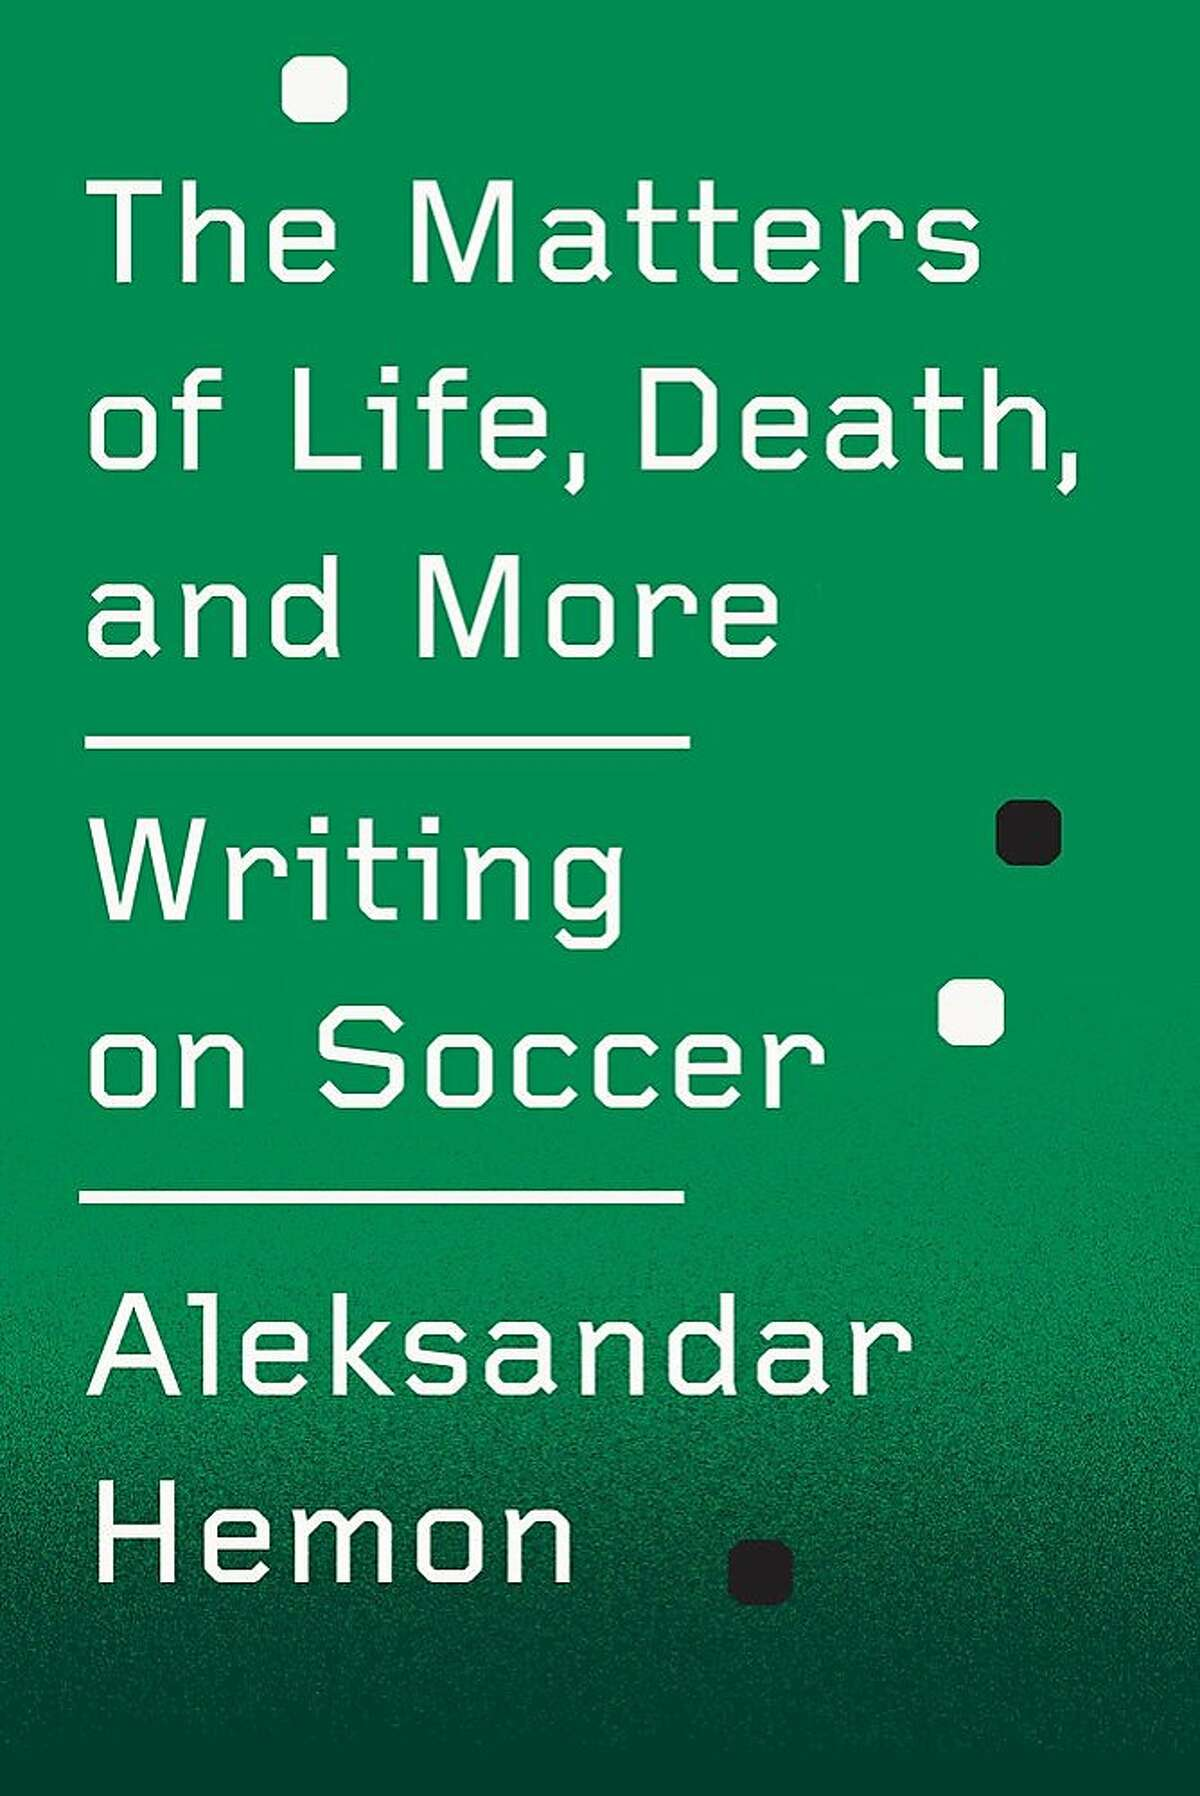 """""""The Matters of Life, Death, and More: Writing on Soccer,"""" by Aleksandar Hemon"""